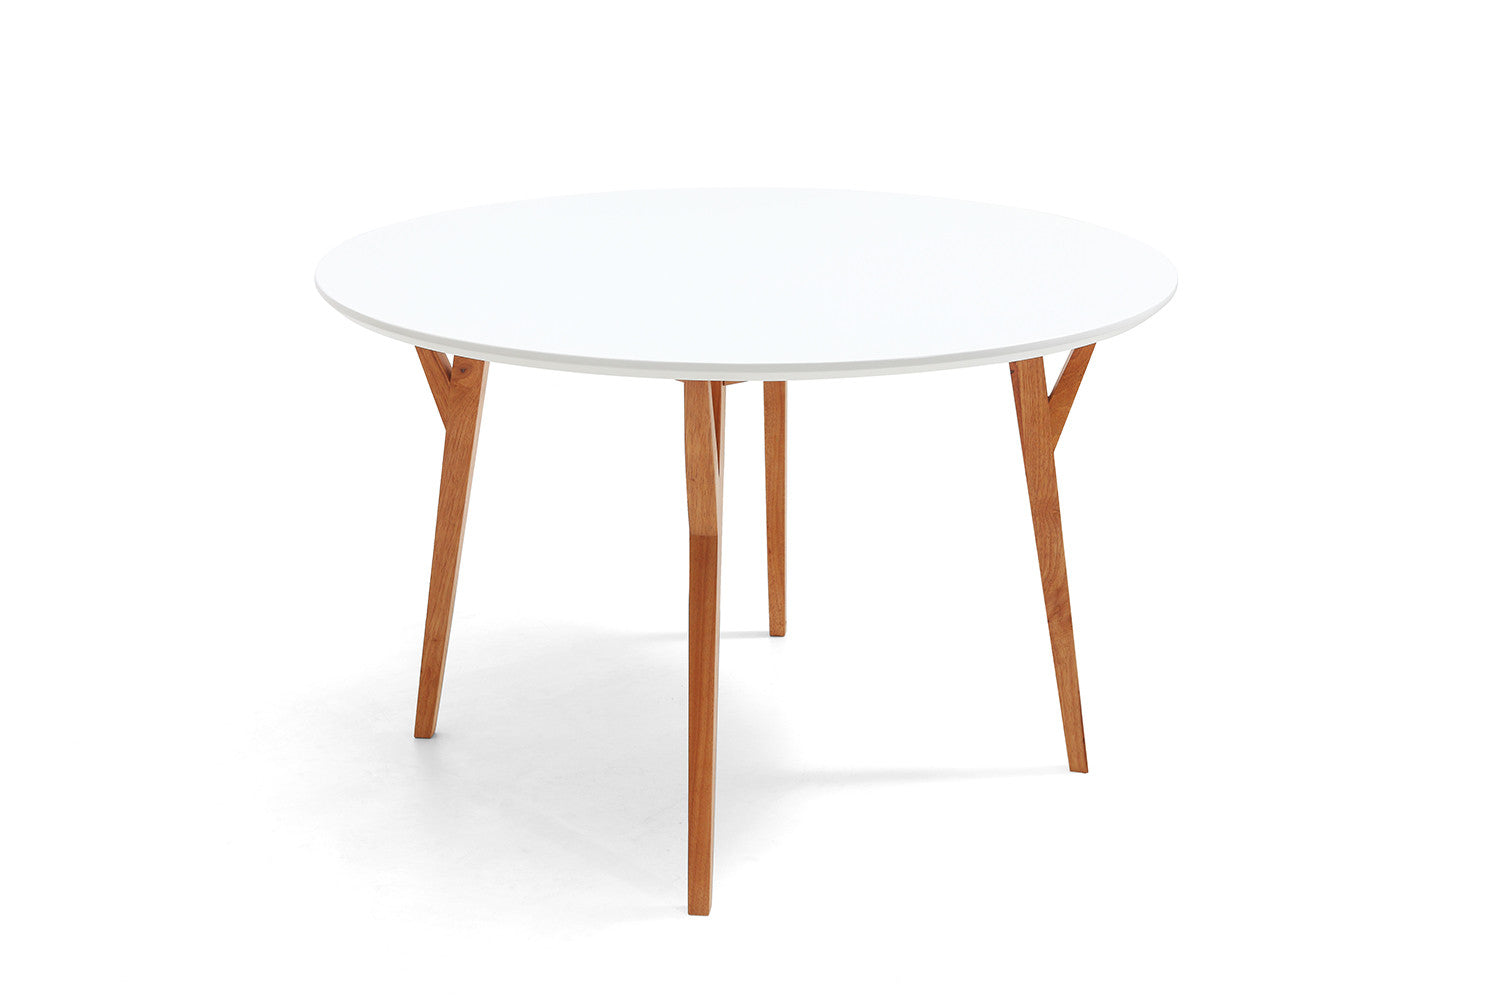 Table de salle manger ronde design scandinave moesa for Table ronde a rallonge blanche